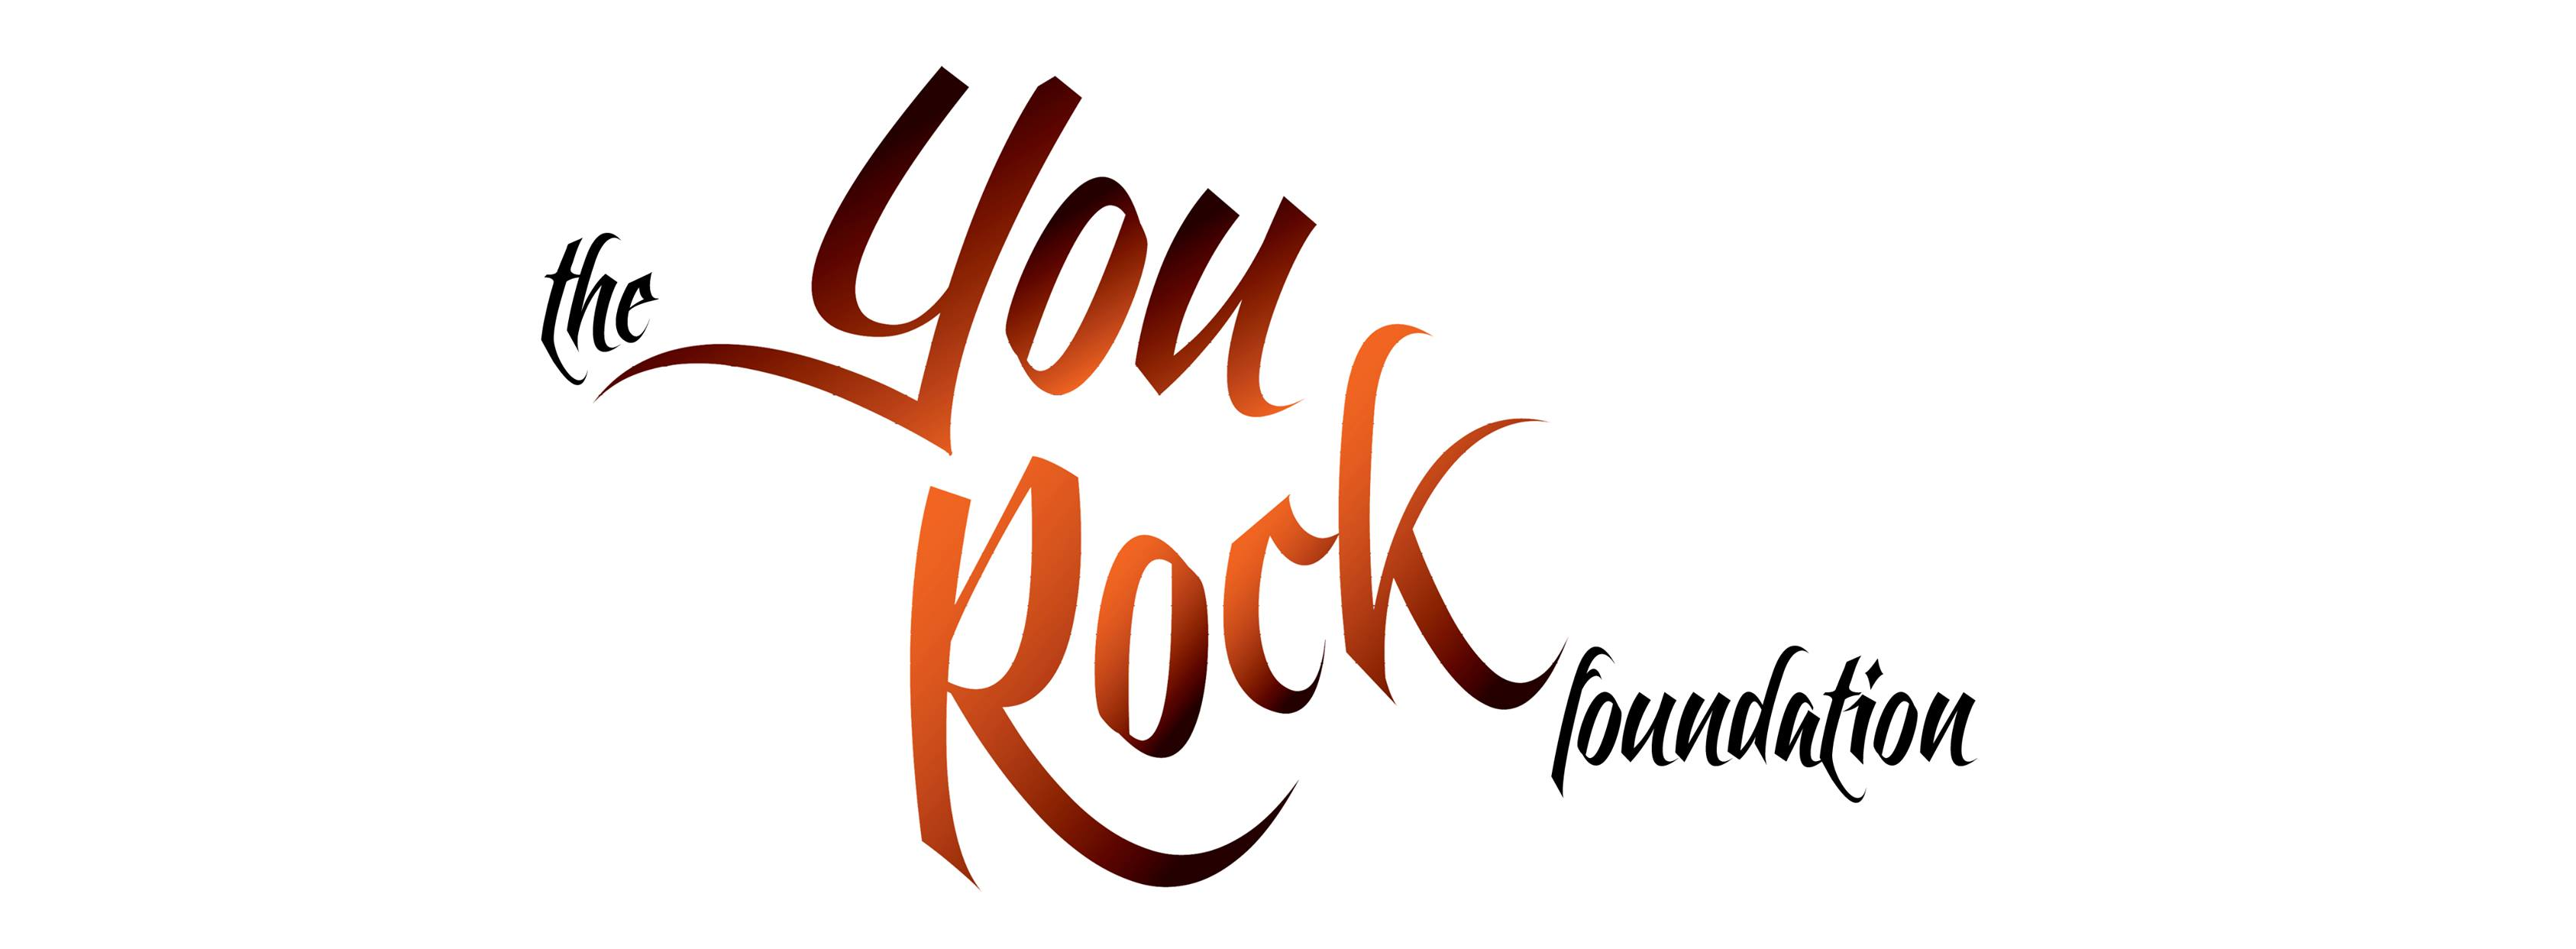 The You Rock Foundation